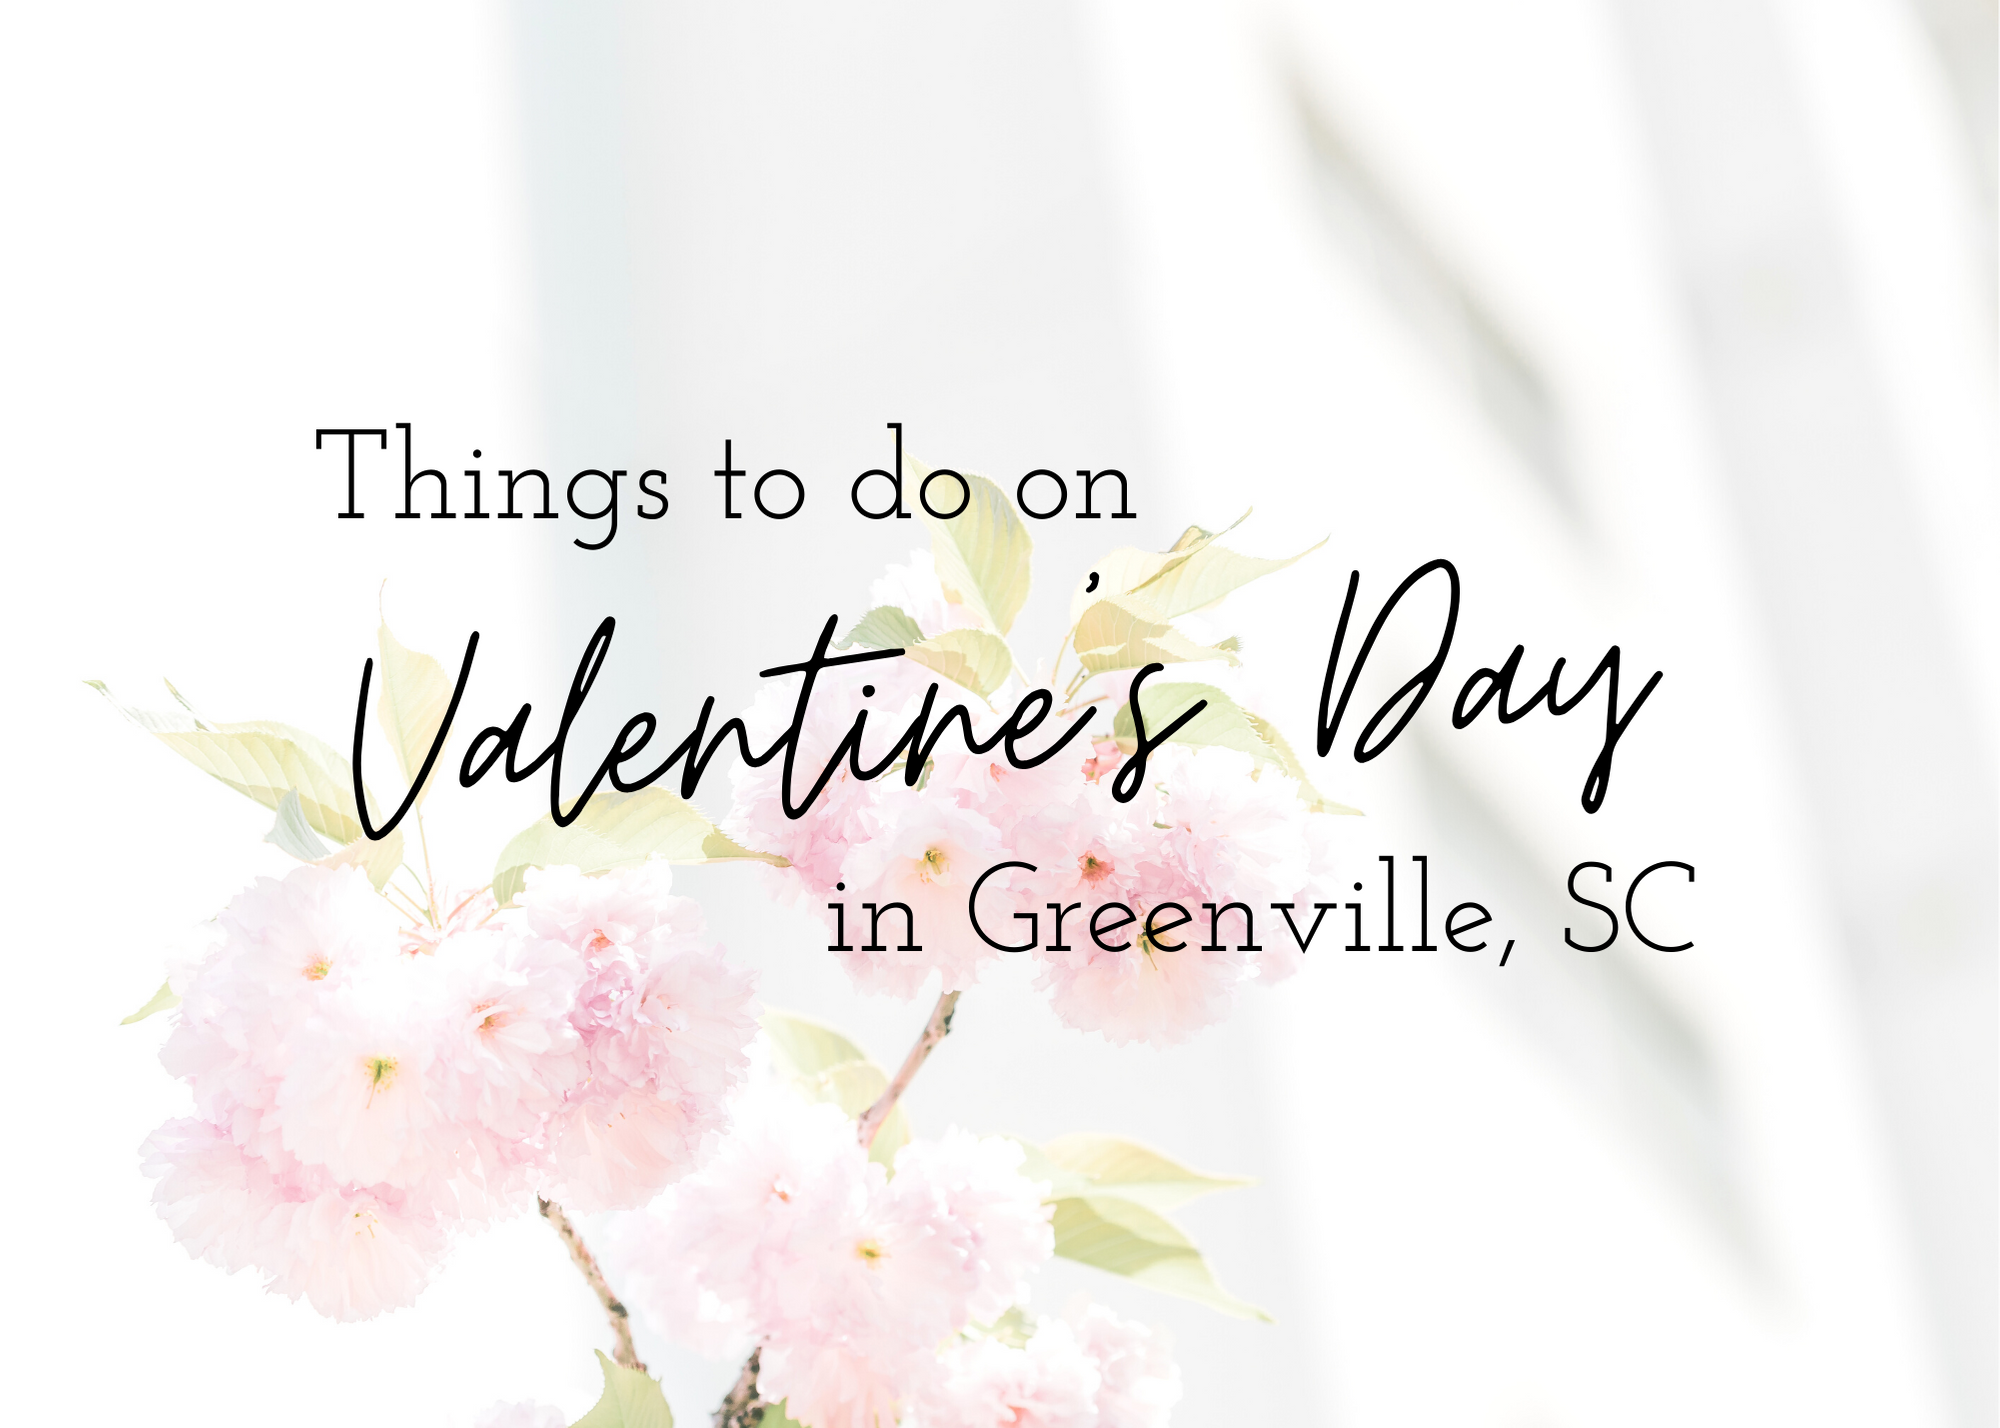 Things to do on Valentine's Day Family friendly: Dinner Out or In Movie Night In or Out Go Cart Bowling Adulting Couple: Ax Throwing Gun Range Escape Room DIY Wine & Paint lifestyle, holiday, valentines day, galentines day, gift guide, gift ideas, love, valentines day, things to do in Greenville, yeahthatgreenville, yeah that greenville, things to do on valentines day, things to do in the greenville sc area, romantic places to eat in Greenville, fun places to go in Greenville, events happening in Greenville, Greenville area, Greenville SC Area, local, upstate, things to do in upstate SC, places to visit in the Greenville area, fun things to do in the Greenville area, good restaurants in the Greenville area, Simpsonville SC, Mauldin SC, Fountain Inn SC, Greenville SC, family friendly places in Greenville SC, things to do for adults in Greenville SC, celebrating Valentines day in Greenville SC, fun activities in Greenville SC, dinner spots in Greenville SC, restaurants to try out in Greenville SC, things for married couples to do on Valentines Day, things for single people to do on Valentines day, things for families to do on Valentines Day